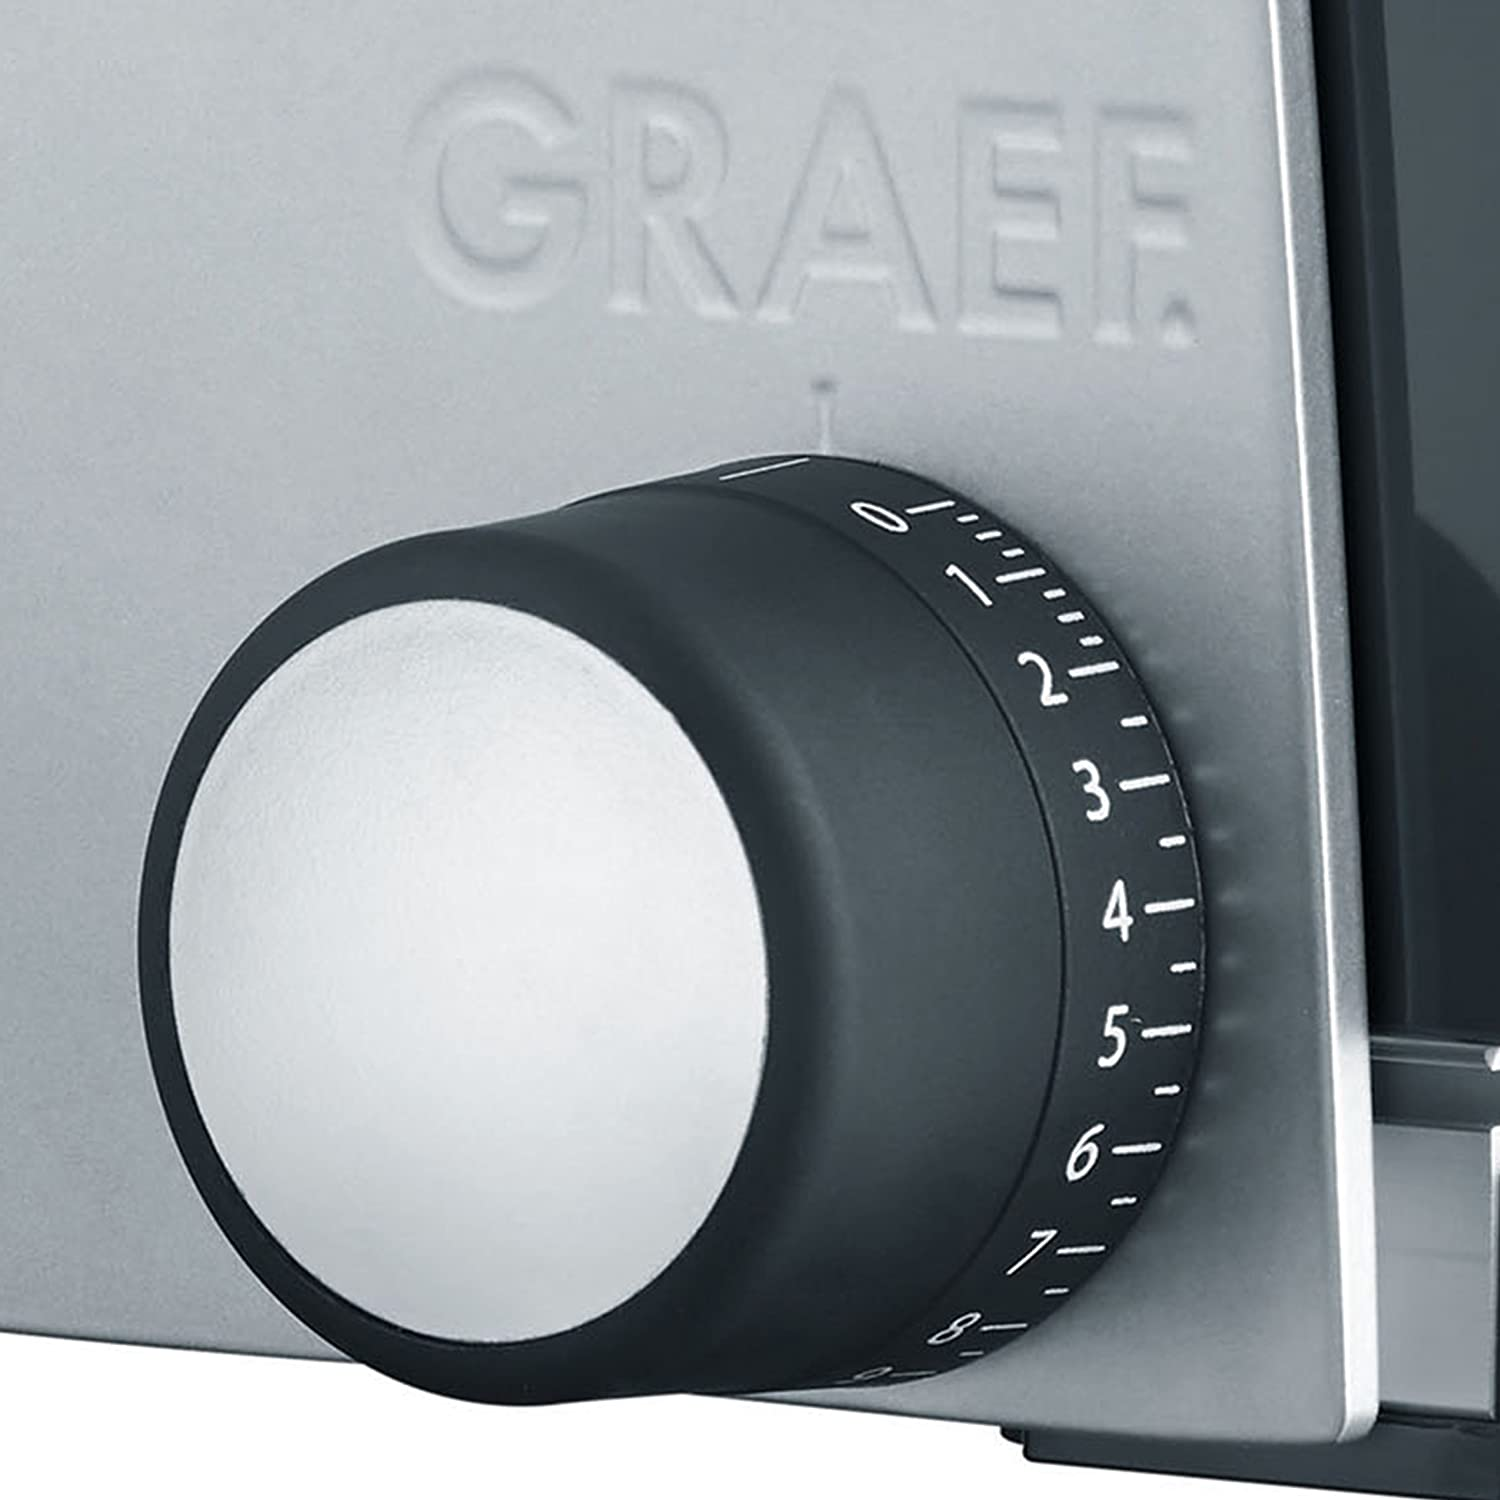 argent Graef s32000/ Trancheuse